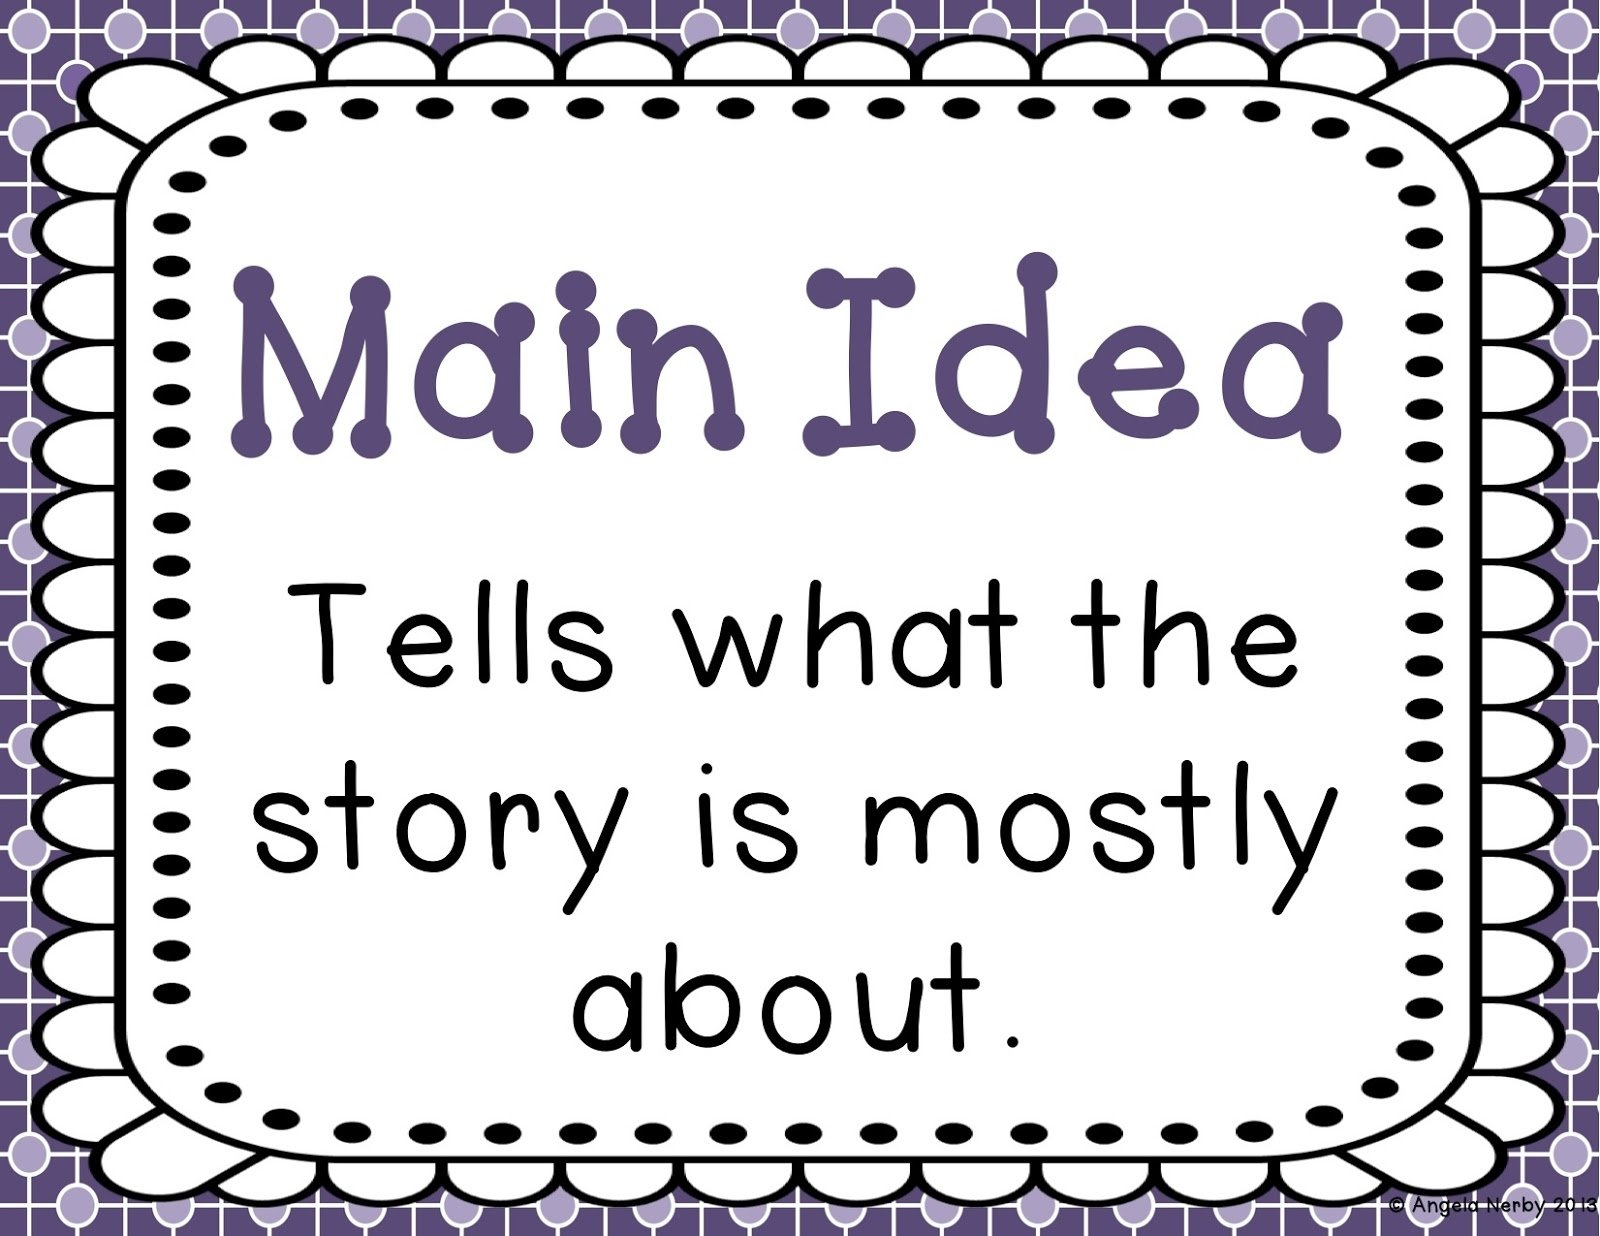 10 Fantastic What Is A Main Idea Of A Story toefl test reading for main ideas english lessons houston 4 2020